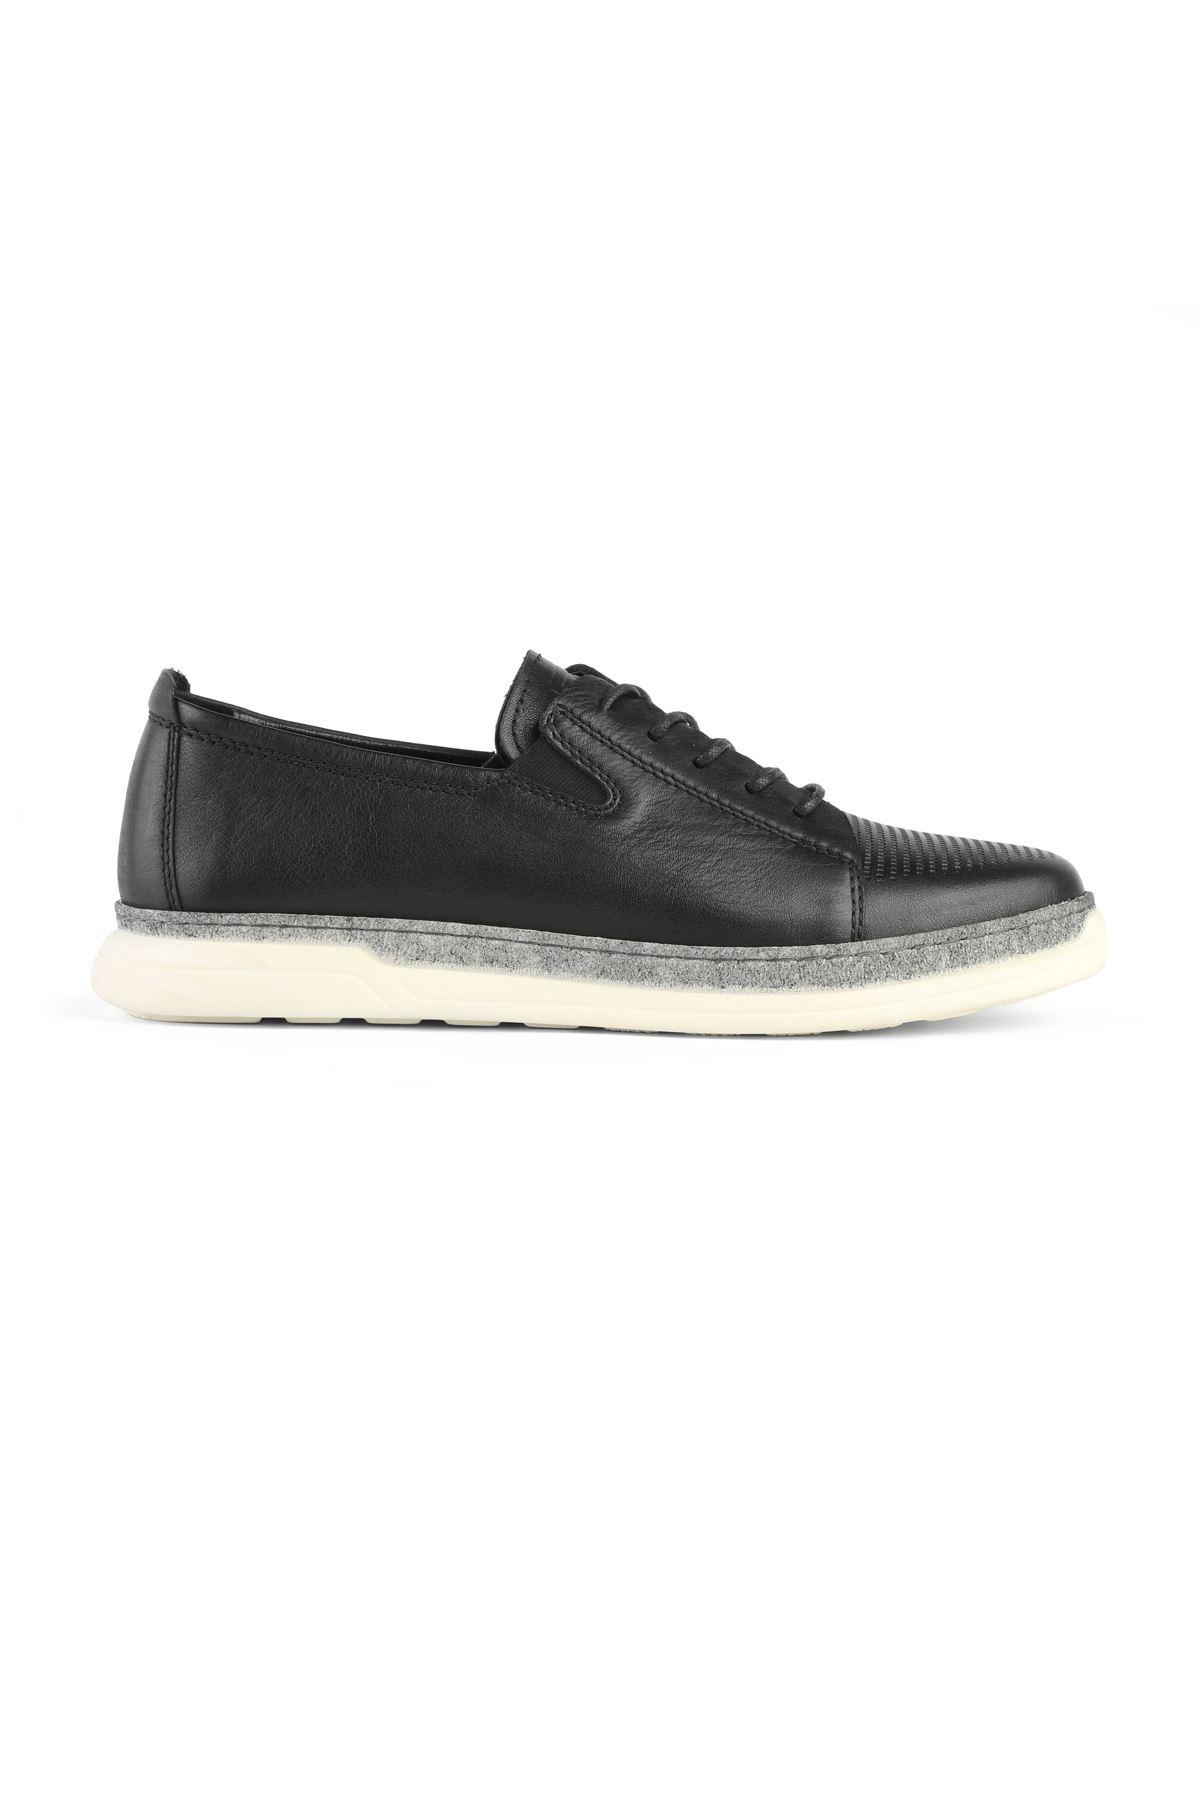 Libero 3307 Black Loafer Shoes